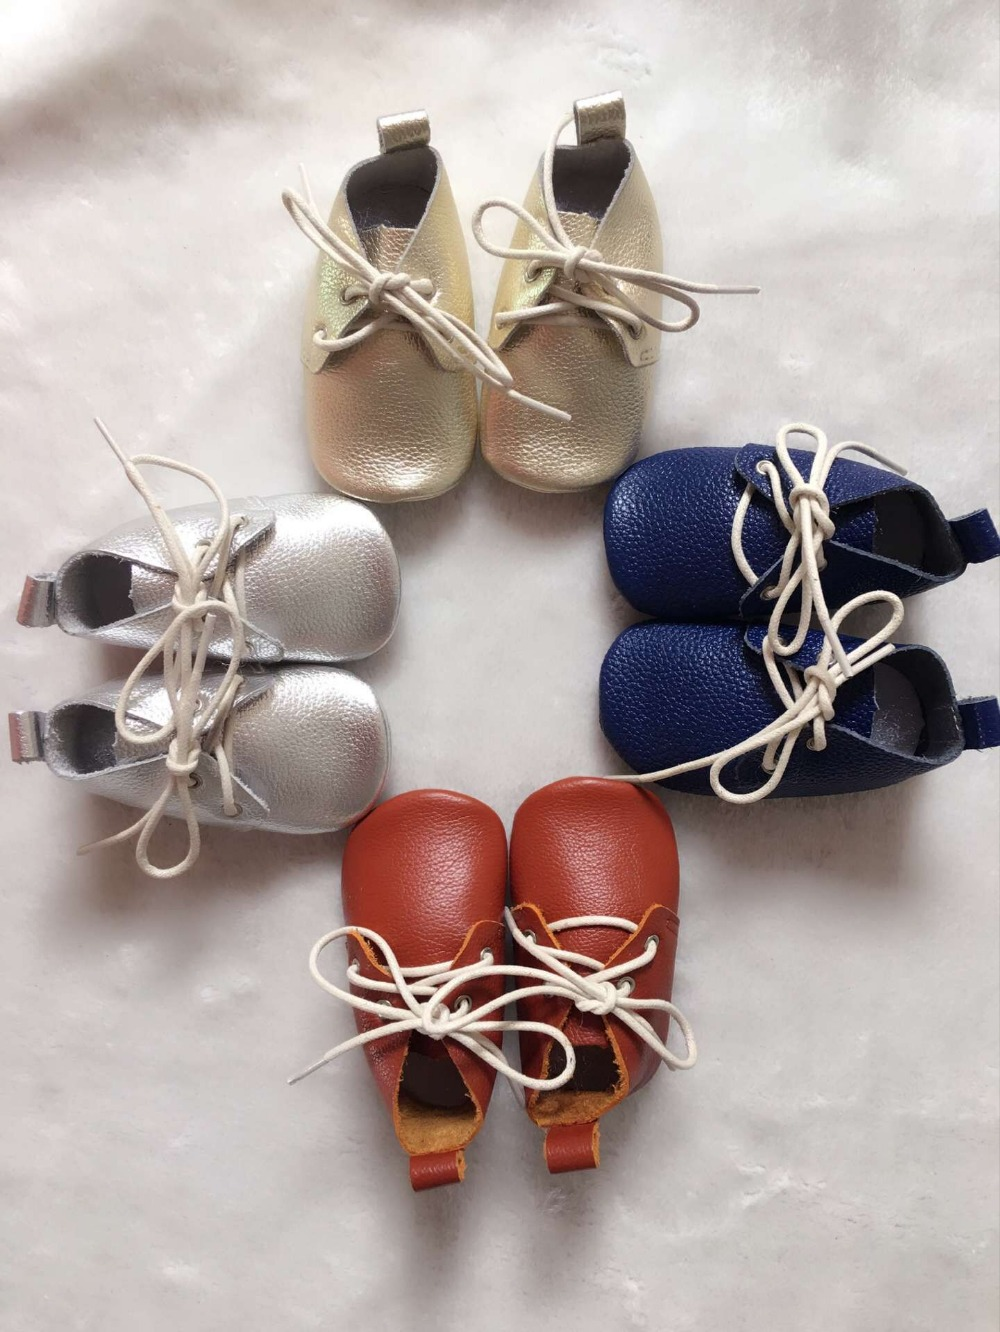 New solid Genuine Leather Baby Moccasins Shoes lace up Baby Shoes soft sole Newborn oxford first walkers Infant baby boot dc power supply uni trend utp3704 i ii iii lines 0 32v dc power supply